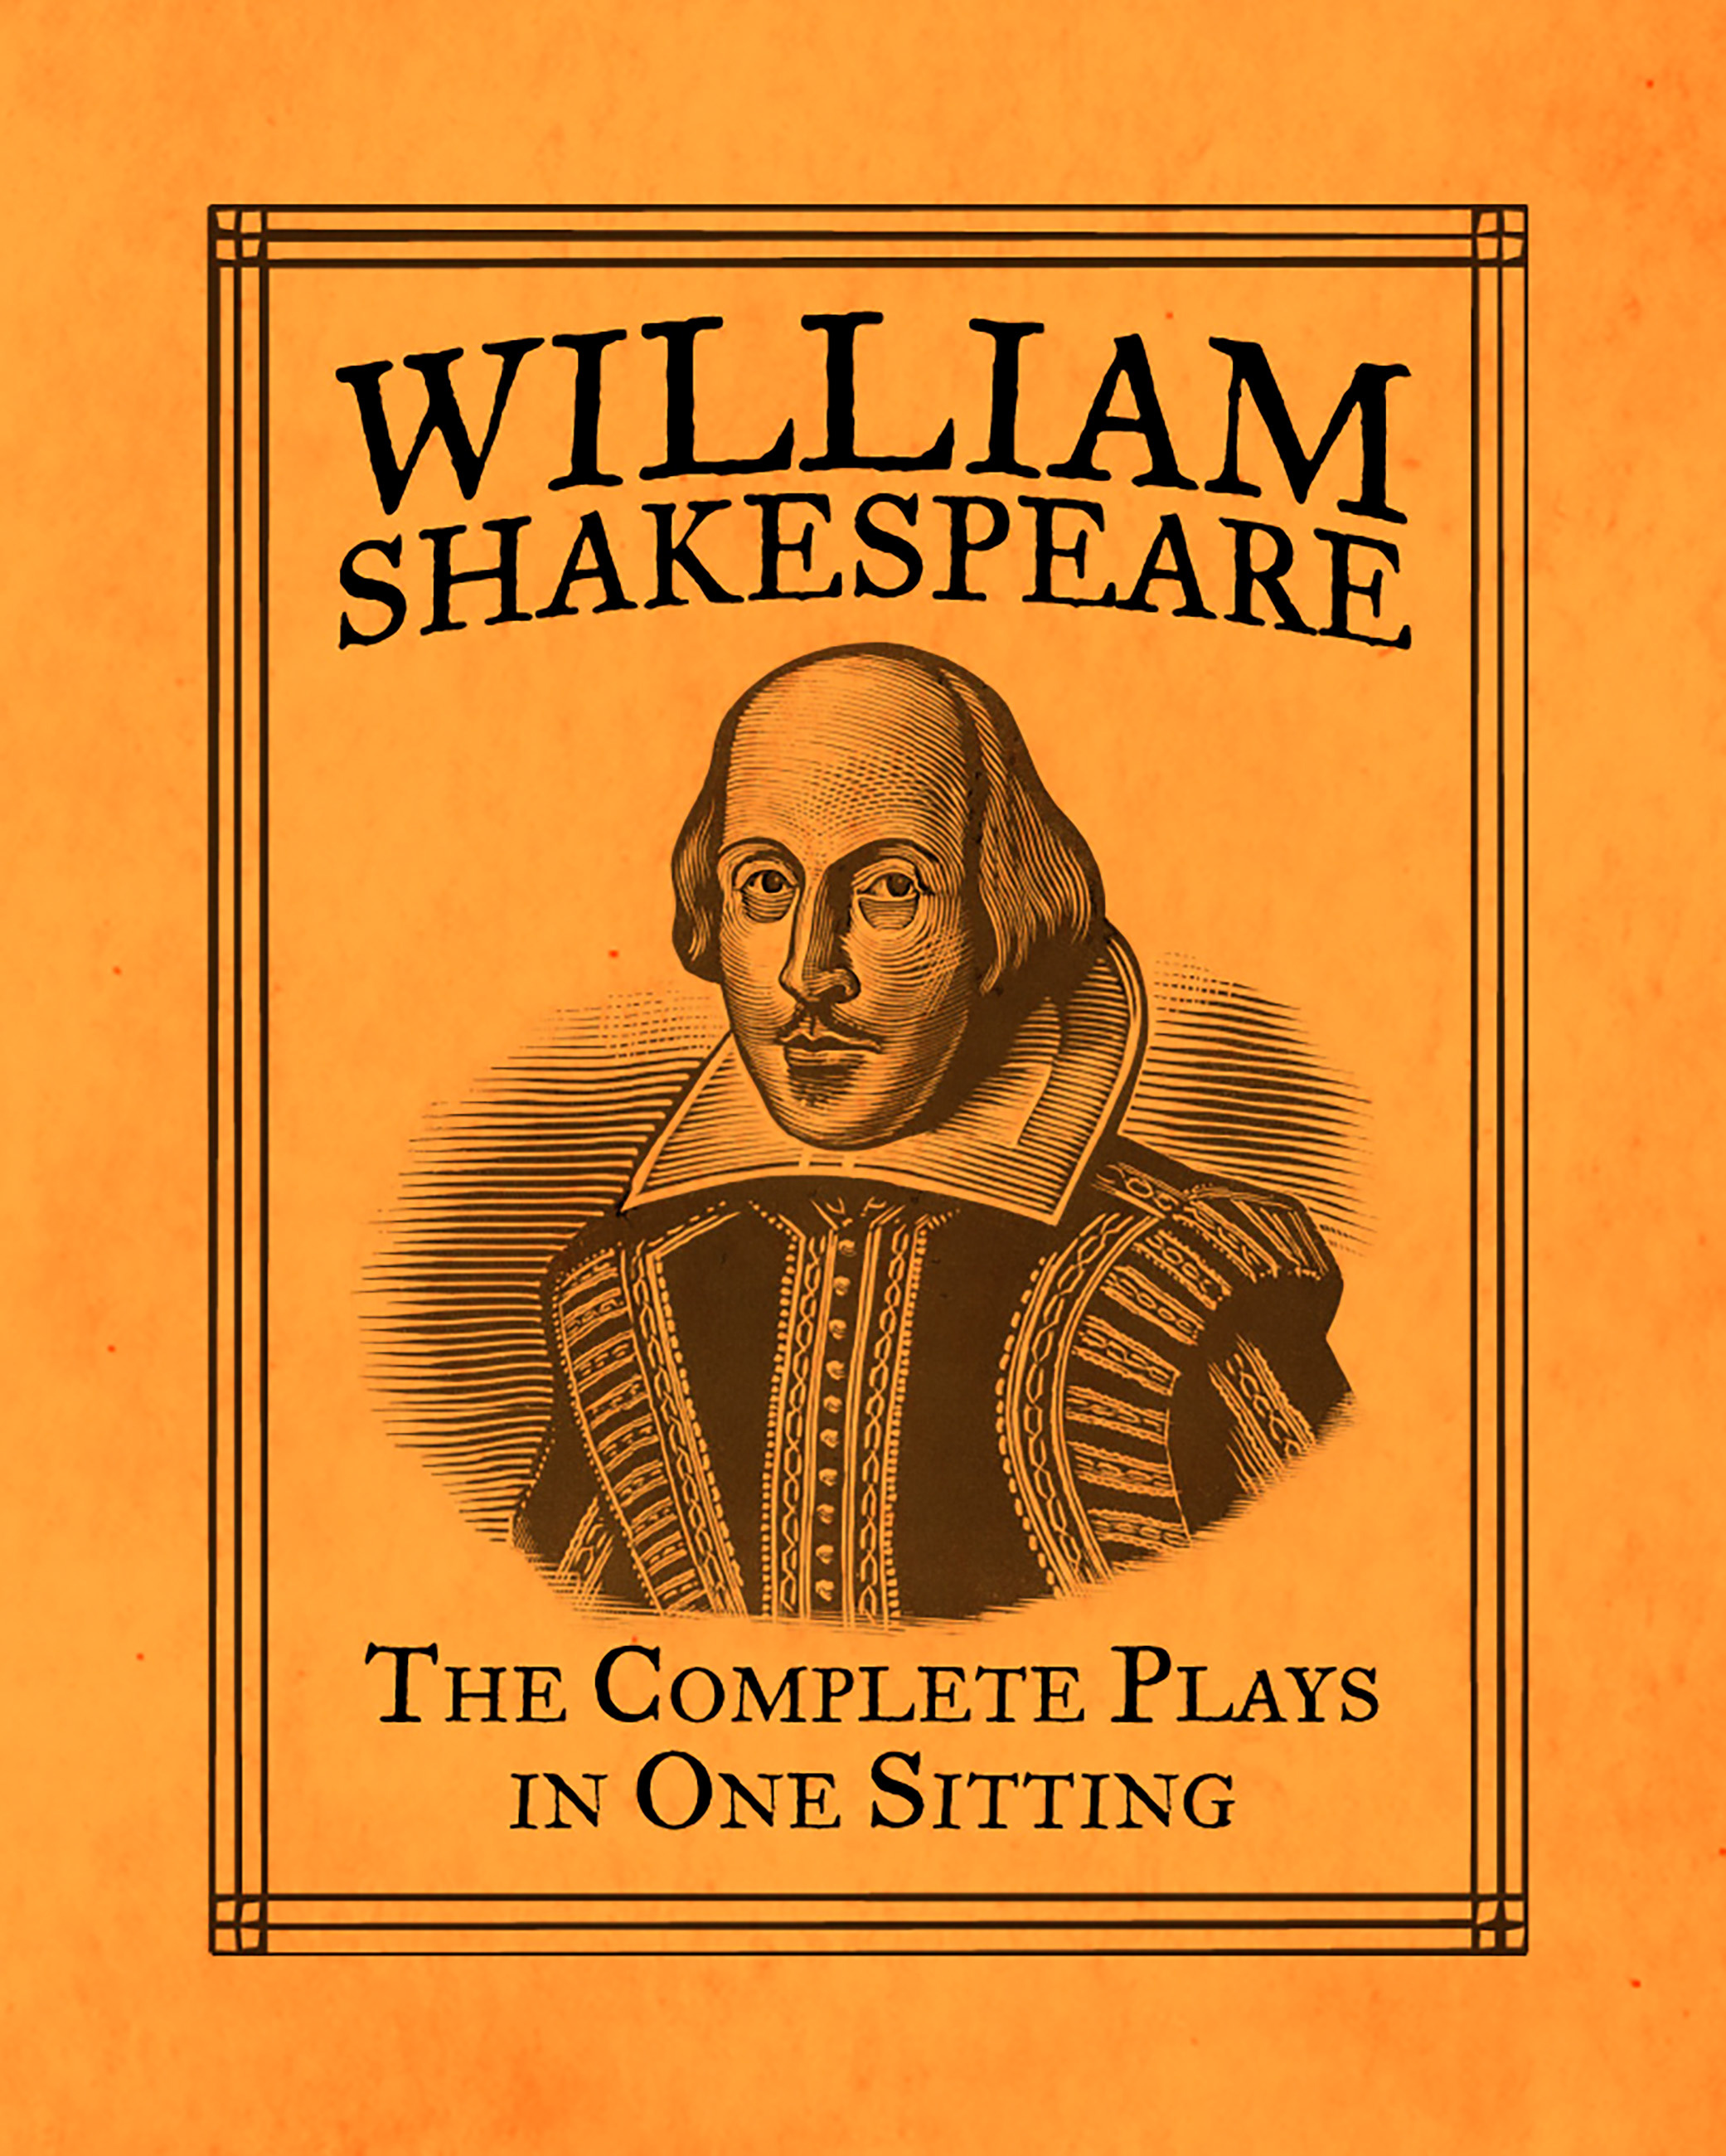 William Shakespeare The Complete Plays In One Sitting By Joelle